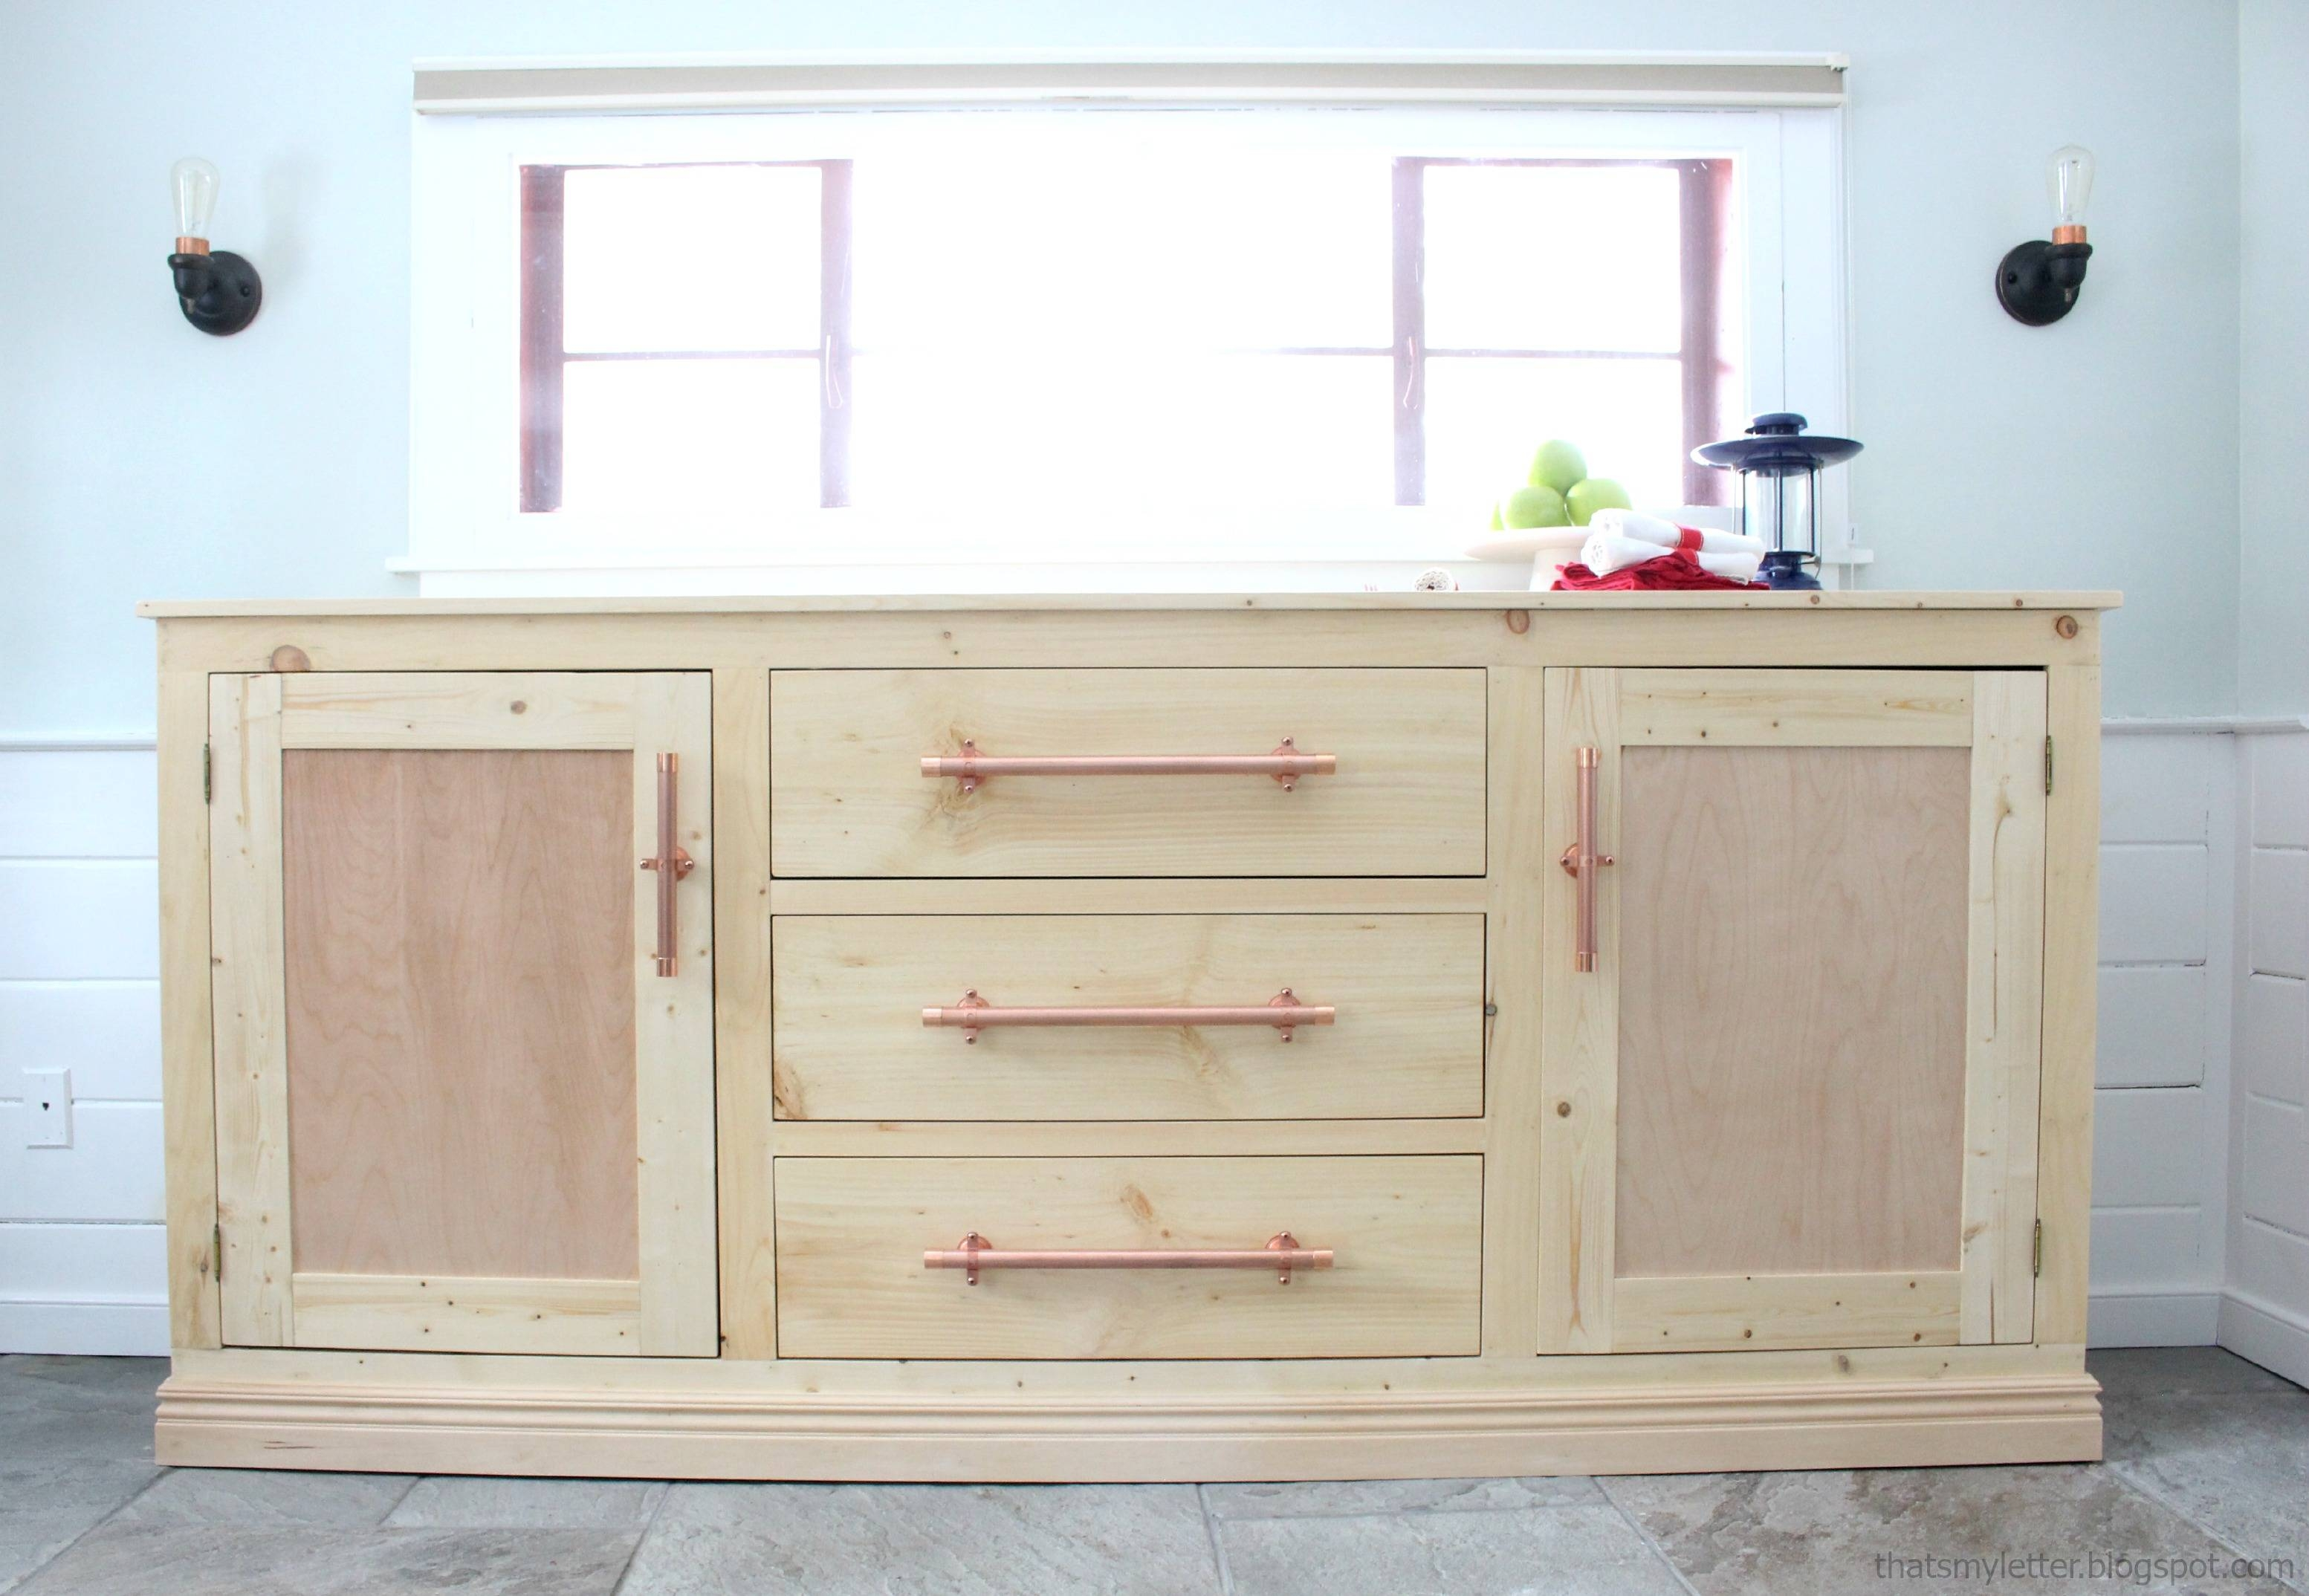 Ana White | Extra Long Buffet Cabinet - Diy Projects within Extra Long Sideboards And Buffets (Image 1 of 15)